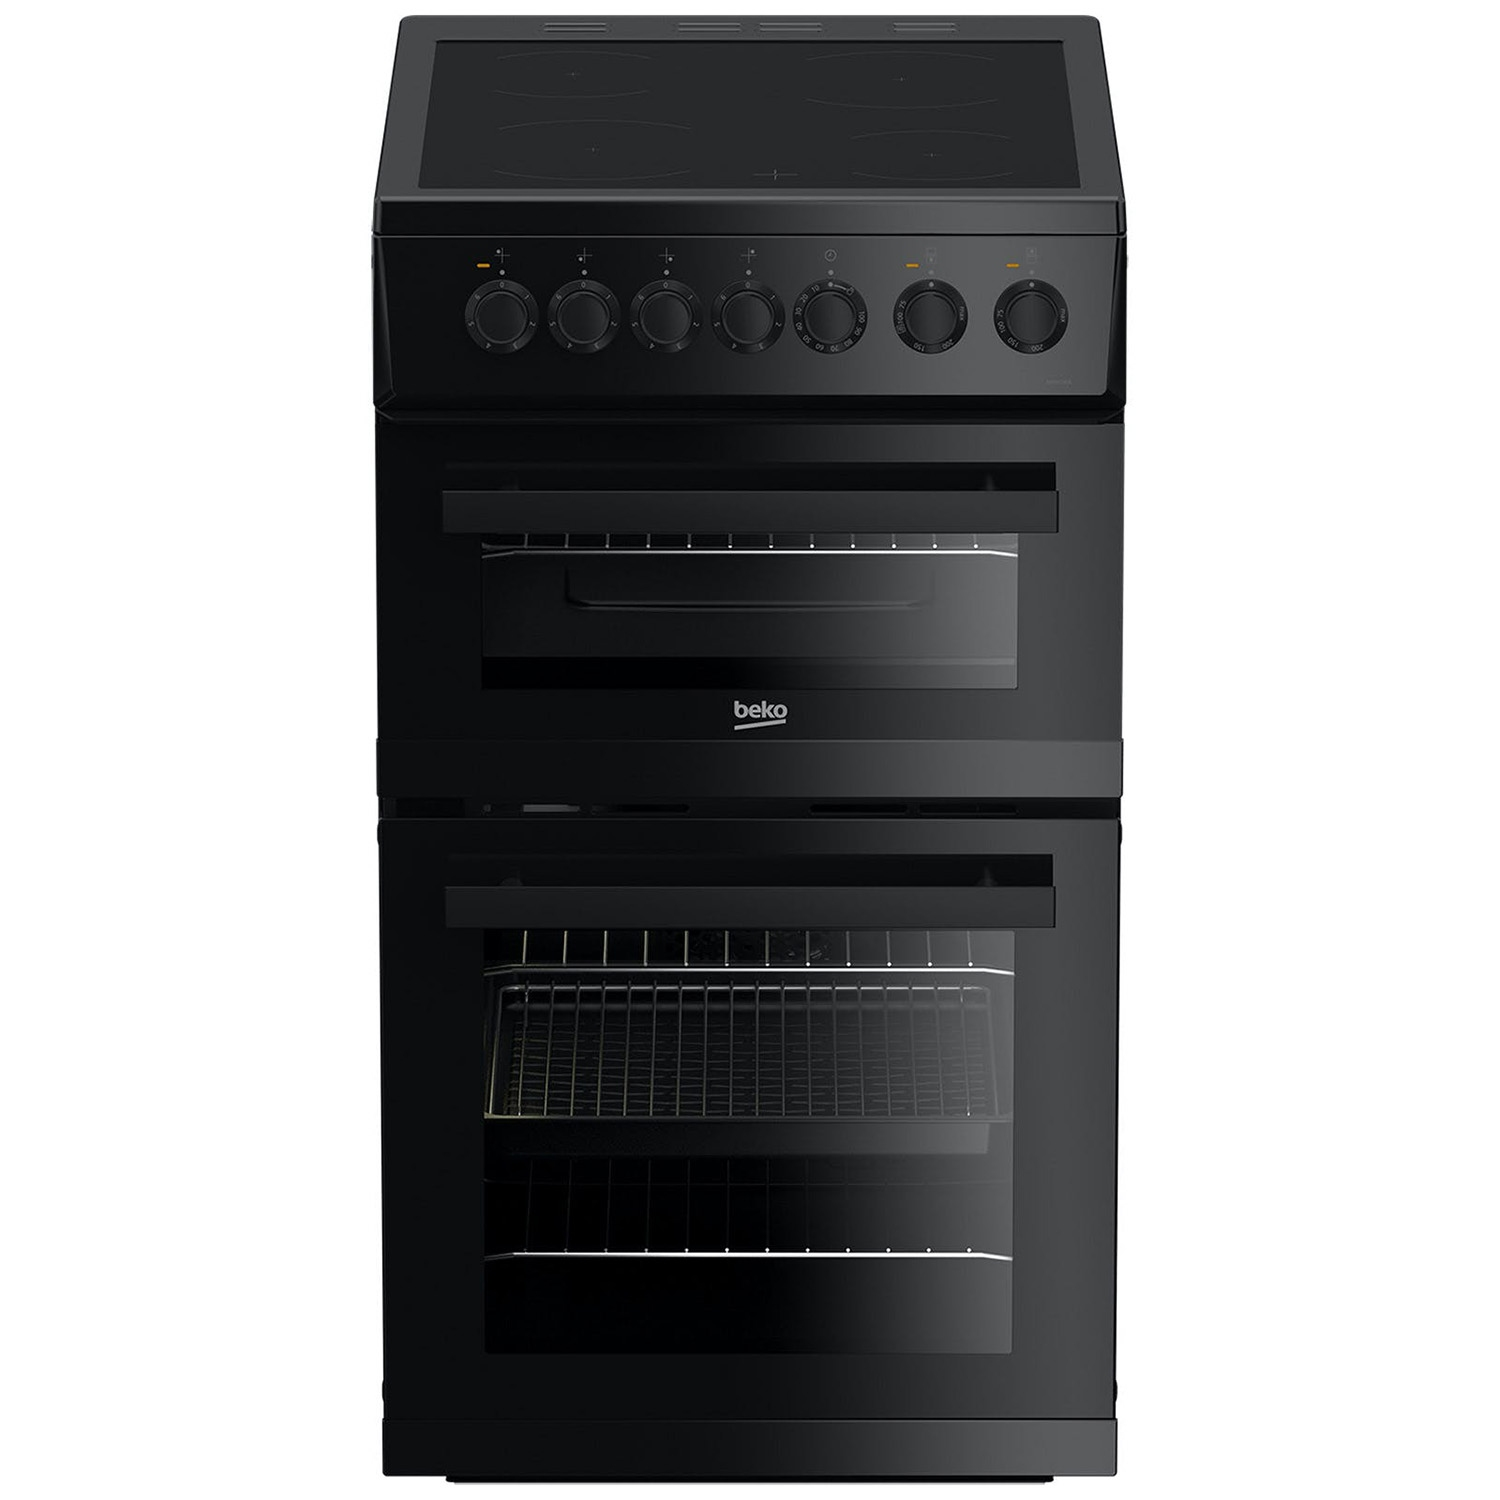 Beko 50cm Double Oven Electric Cooker with Ceramic Hob - Black - A Energy Rated - 0